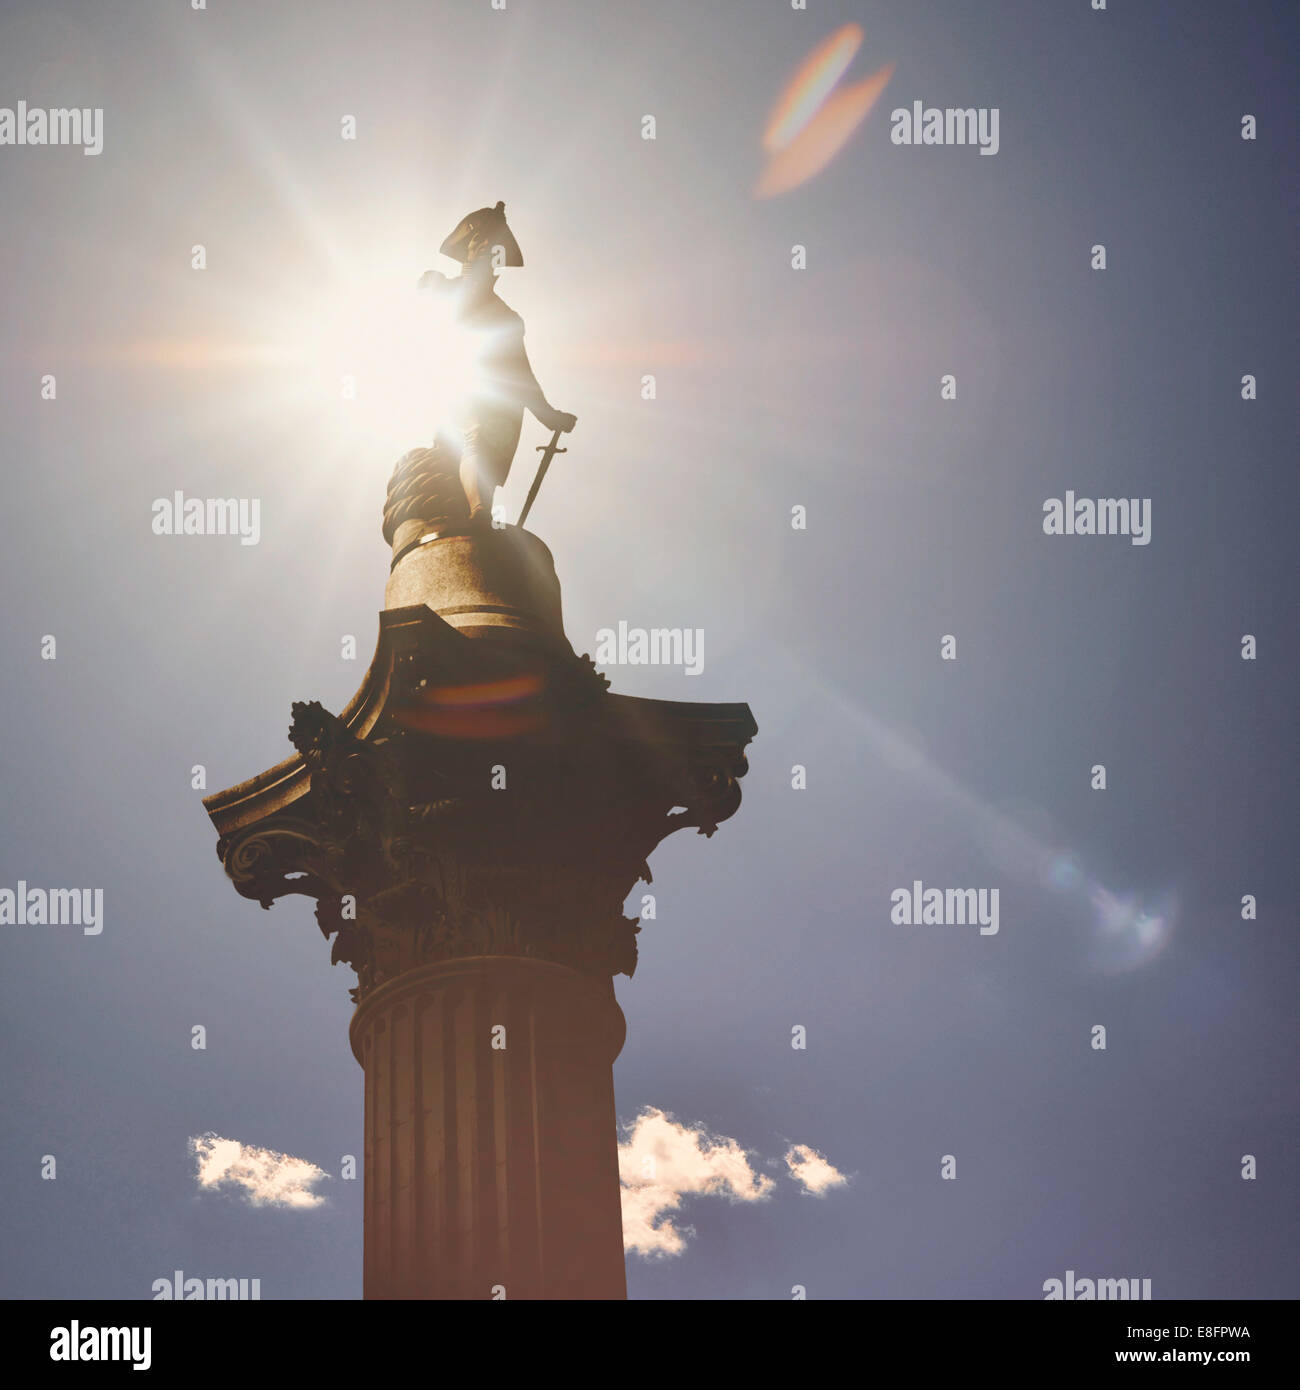 United Kingdom, London, View of Nelson's Column - Stock Image